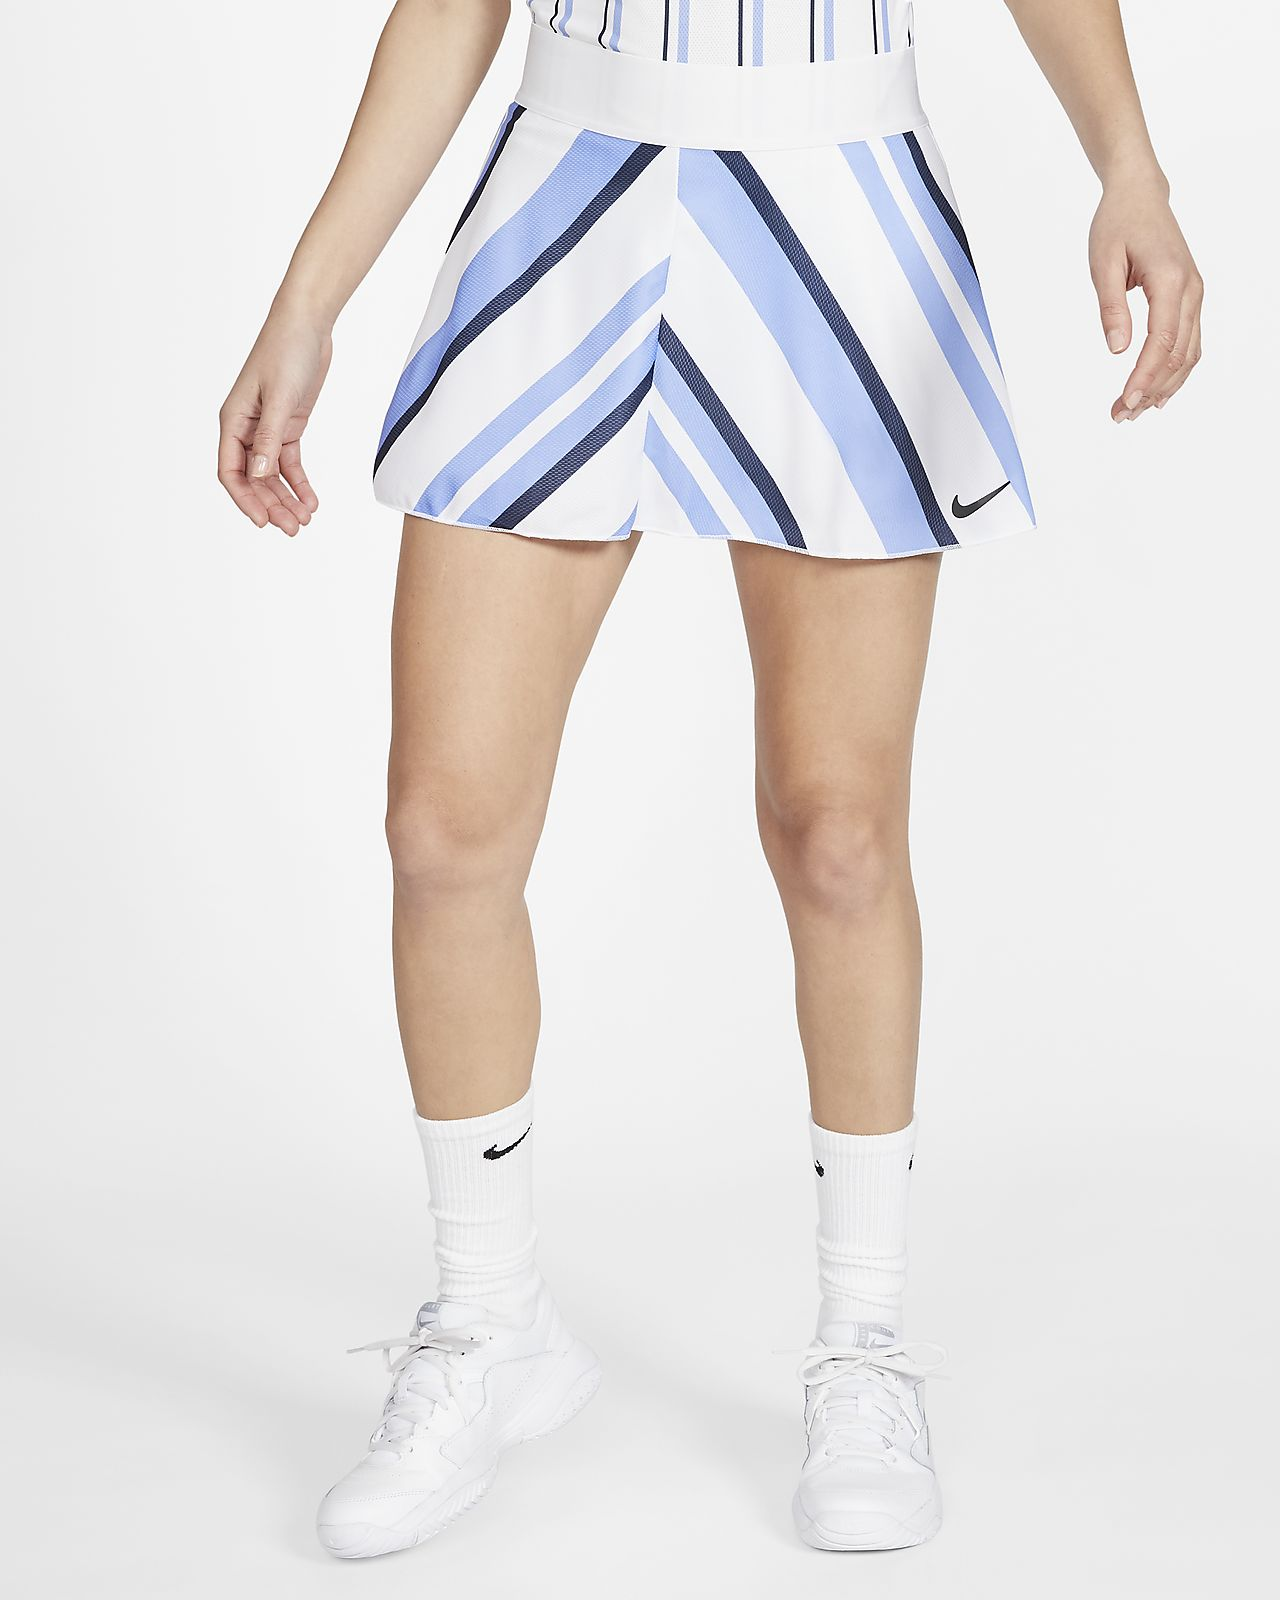 NikeCourt Dri-FIT Women's Printed Tennis Skirt